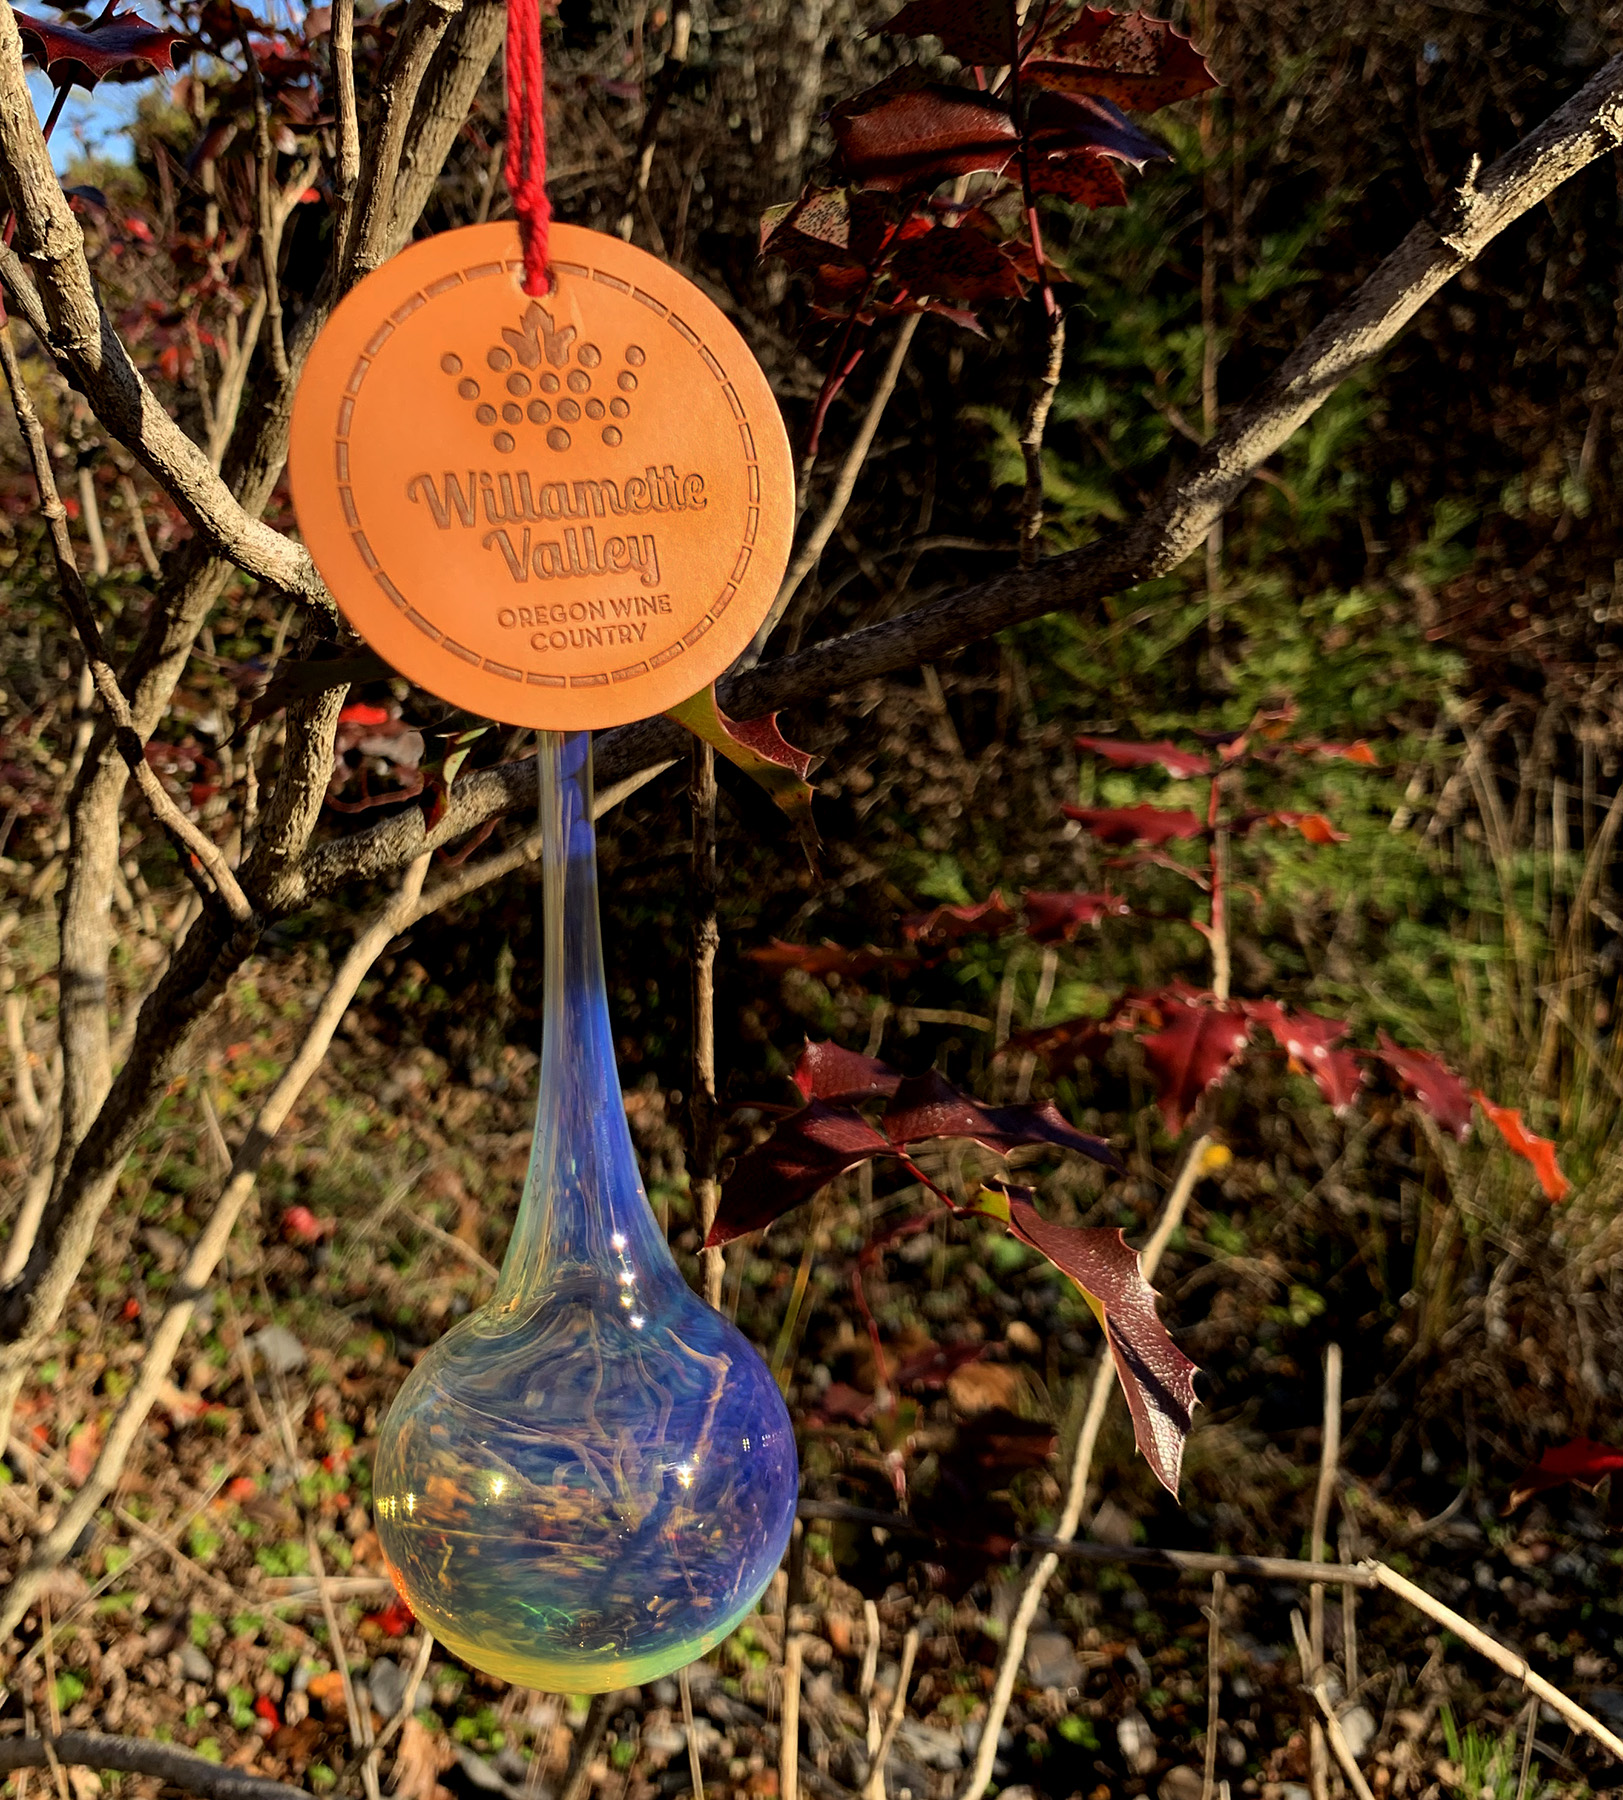 An ornament hangs from a tree for the 2019 willamette wilderness ornament hunt.